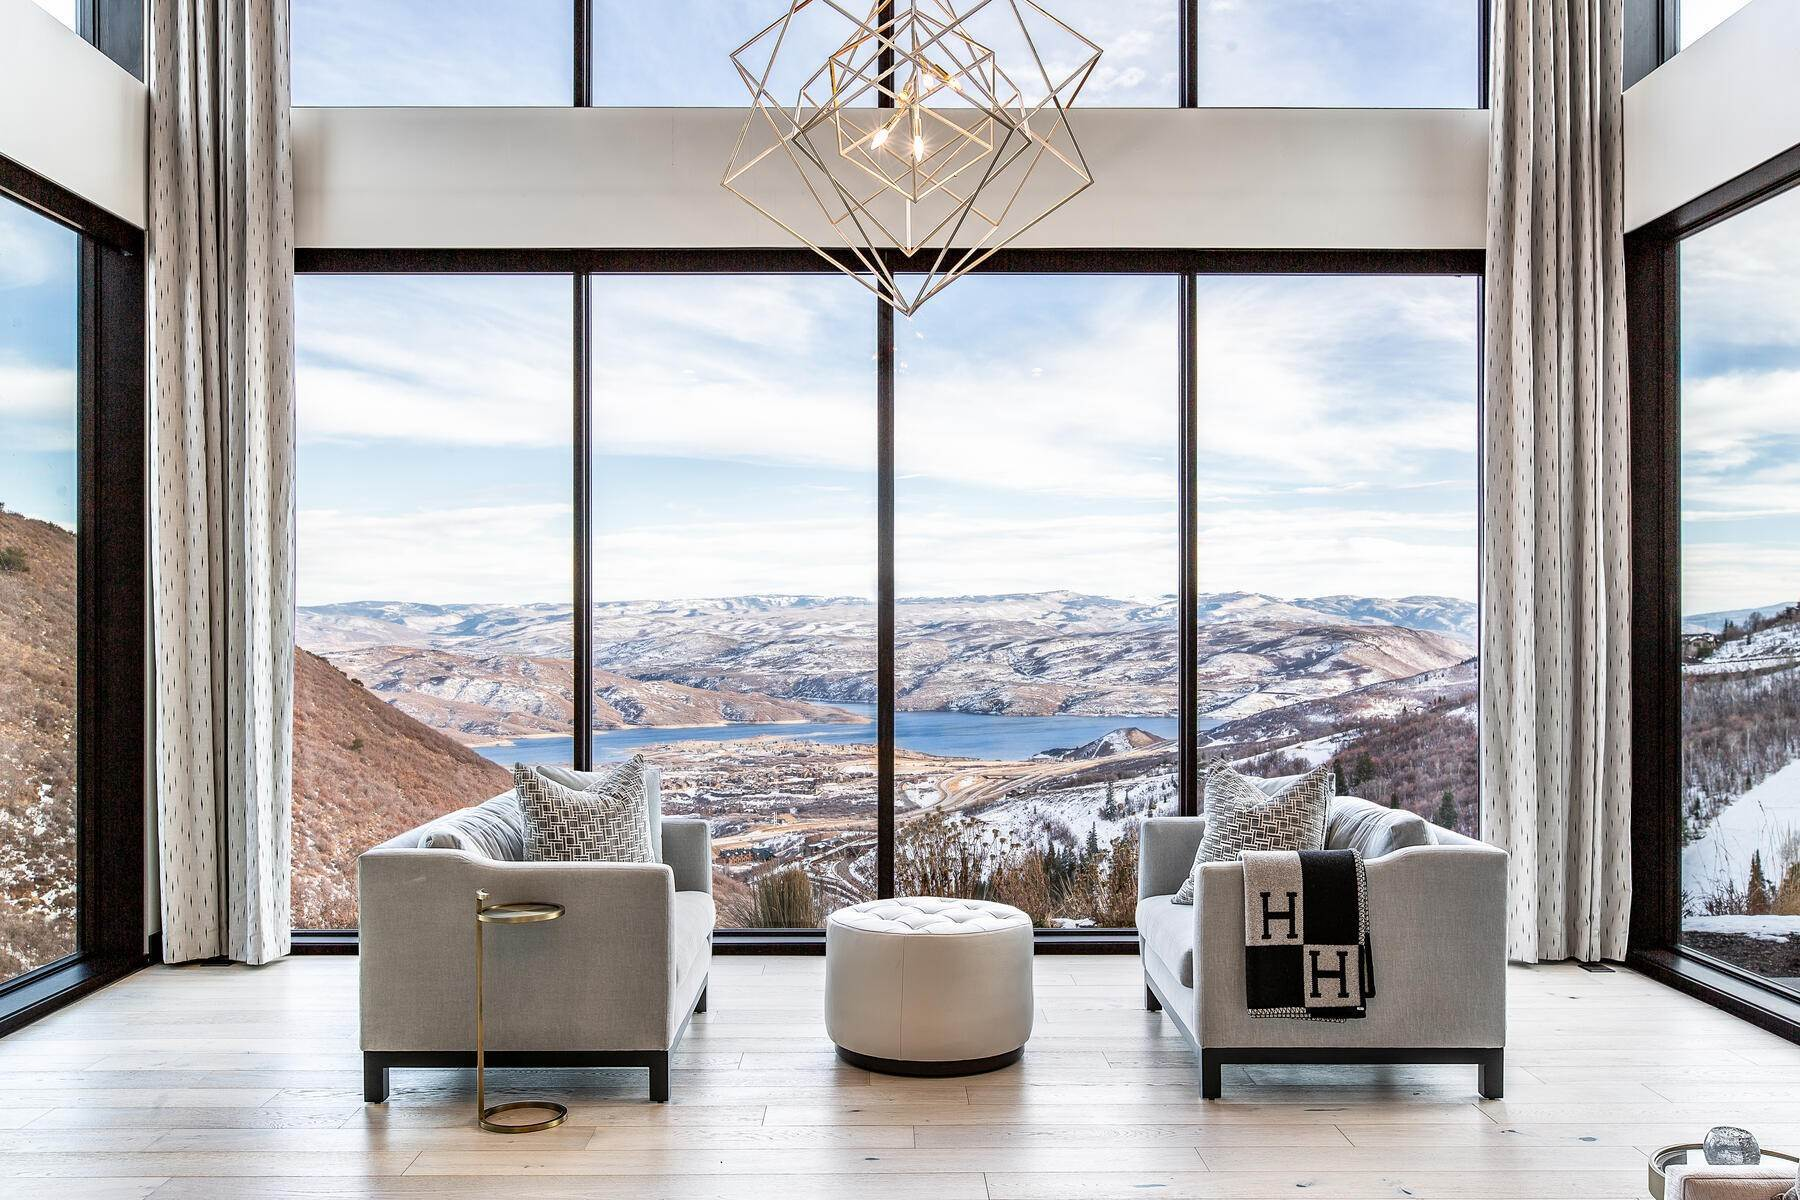 Property for Sale at Stunning Contemporary Deer Valley Home with Amazing Lake and Resort Views 11325 N Snowtop Road Park City, Utah 84060 United States